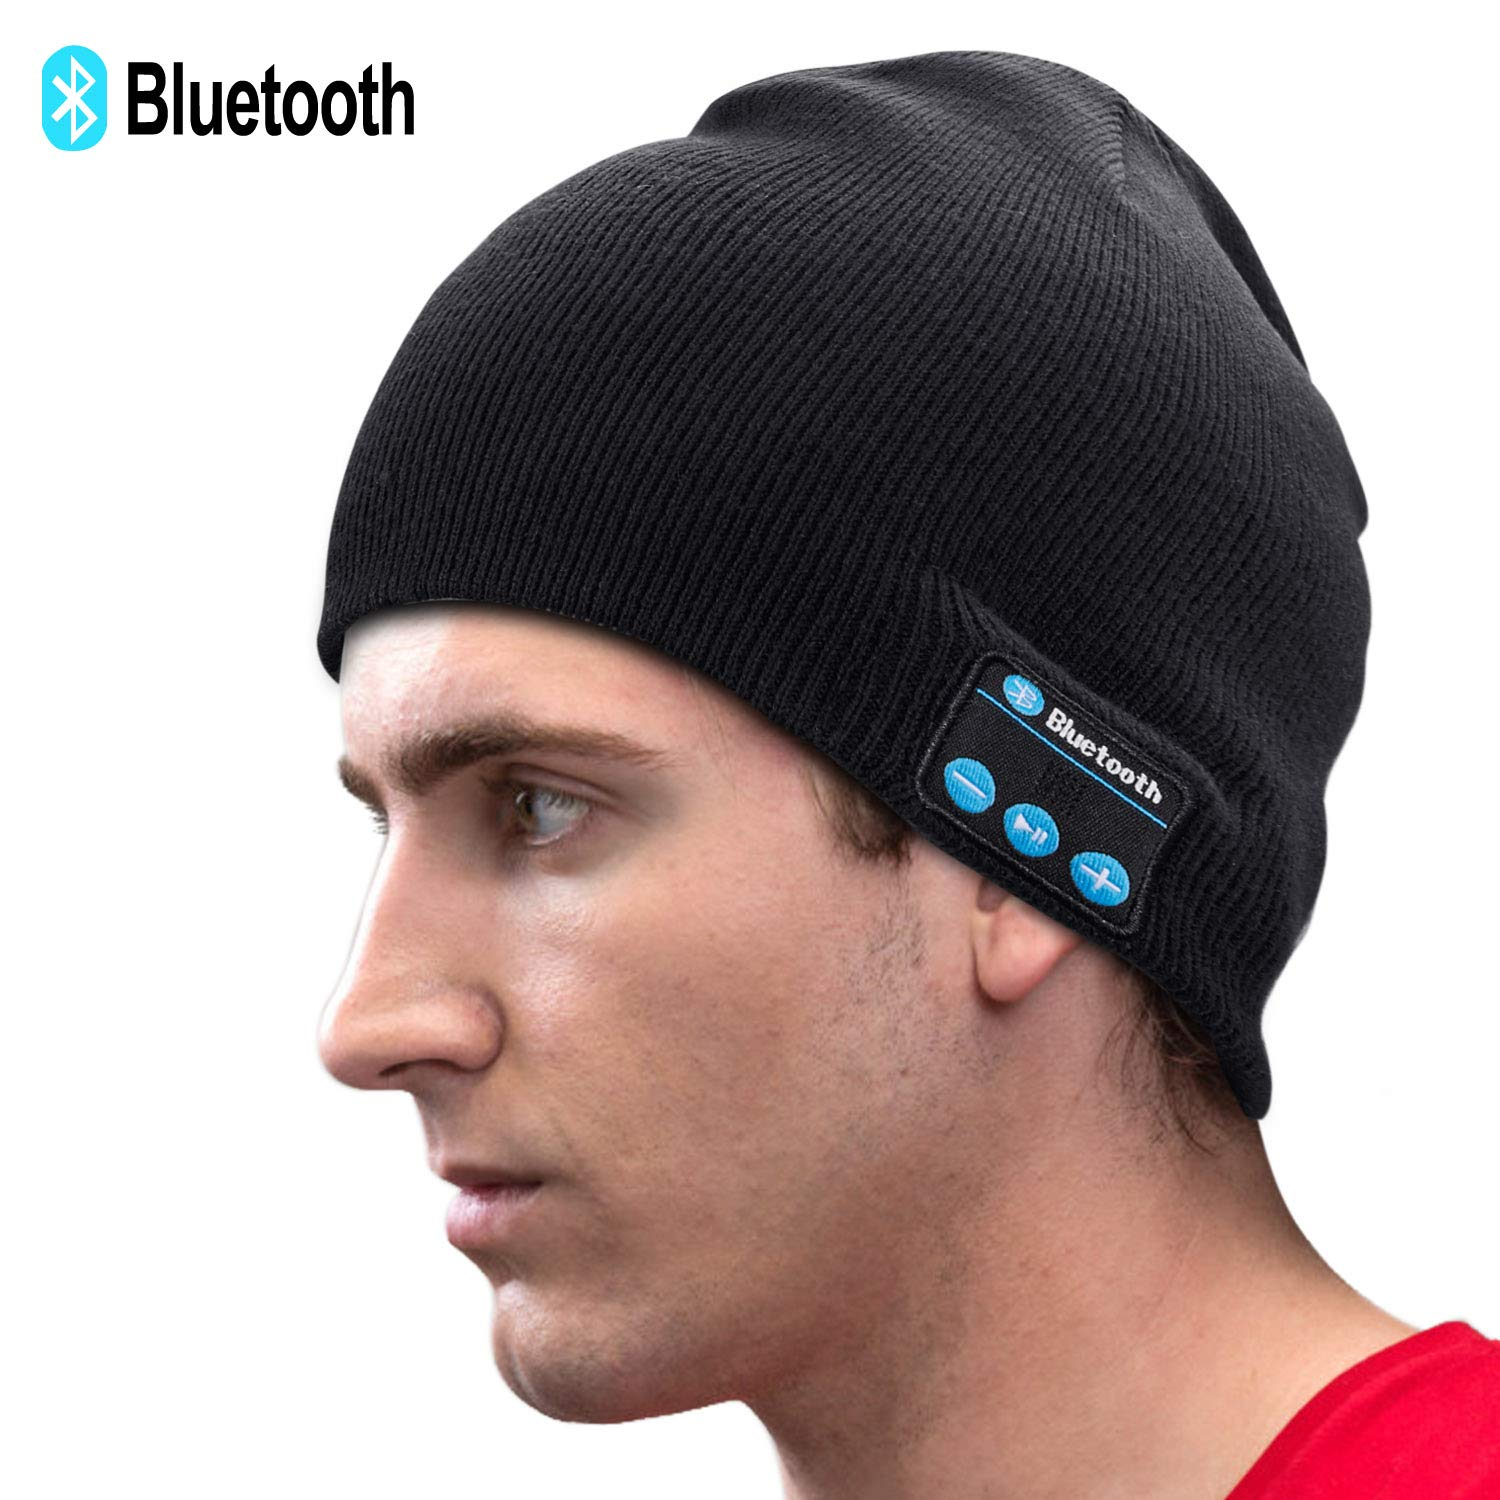 50c2c1882 Unisex Knit Bluetooth Beanie Winter Music Hat Black [Upgraded Newest V5.0]  Knit Running Cap with Stereo Speakers & Mic Unique Christmas Tech Gifts for  ...